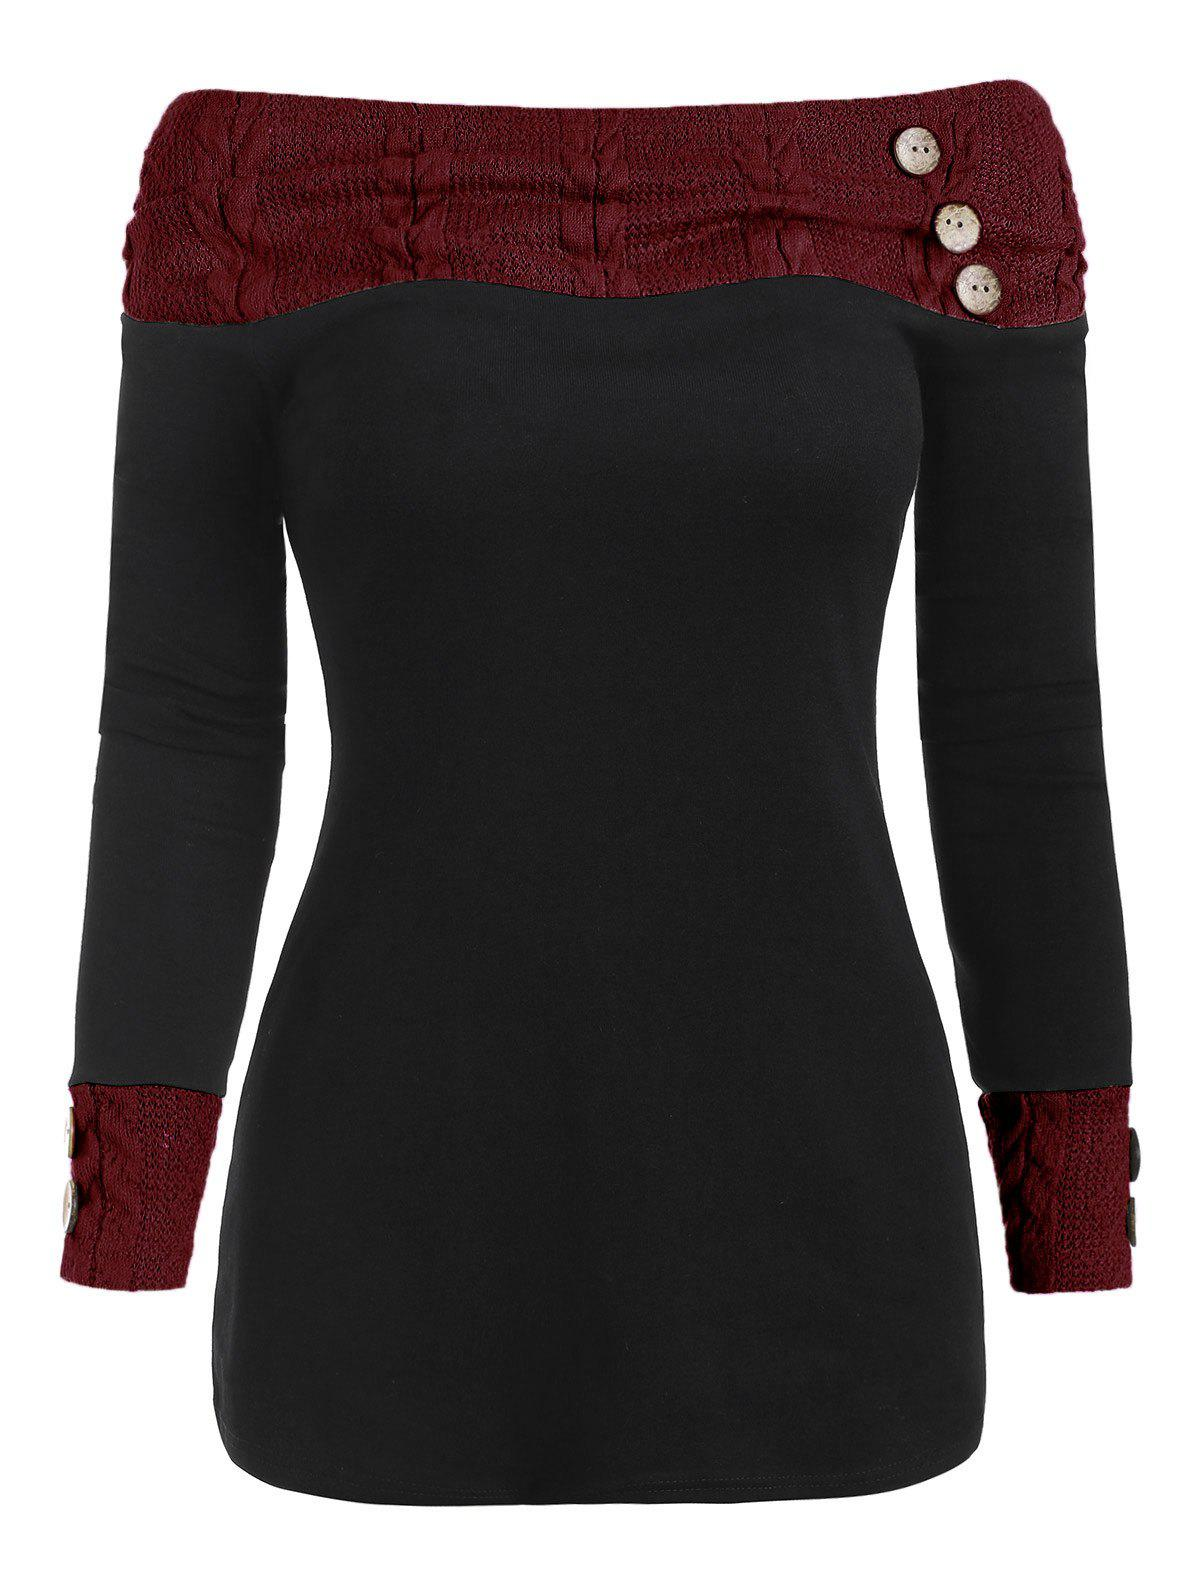 Off Shoulder Knit Panel Buttons Top - RED WINE 2XL